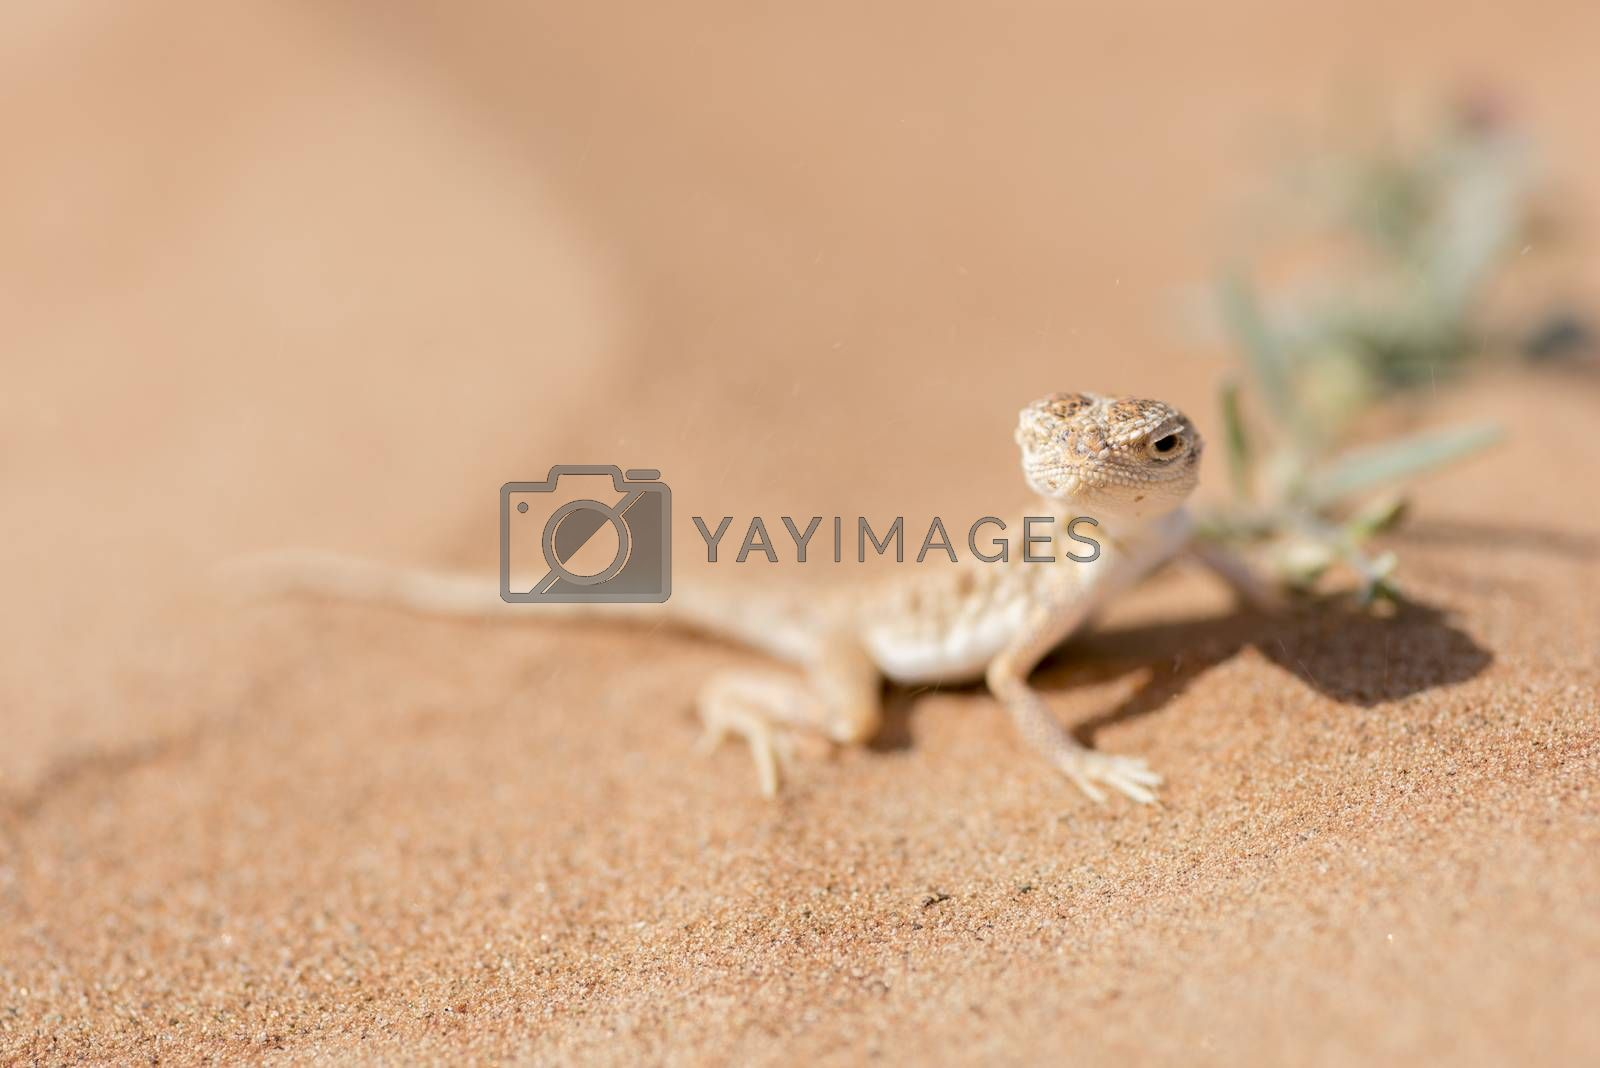 The Arabian toad-headed agama (Phrynocephalus arabicus) is a member of the Agamidae family, also known as the chisel-teeth lizards due to the compressed, fused teeth being firmly attached to the upper jaw, unlike most other lizards which have loosely attached teeth. He was posing close to a flower in the Desert of Sharjah, United Arab Emirates. He was hinting flies and was not disturb at all by my presence giving me the opportunity to take this close-up shot.